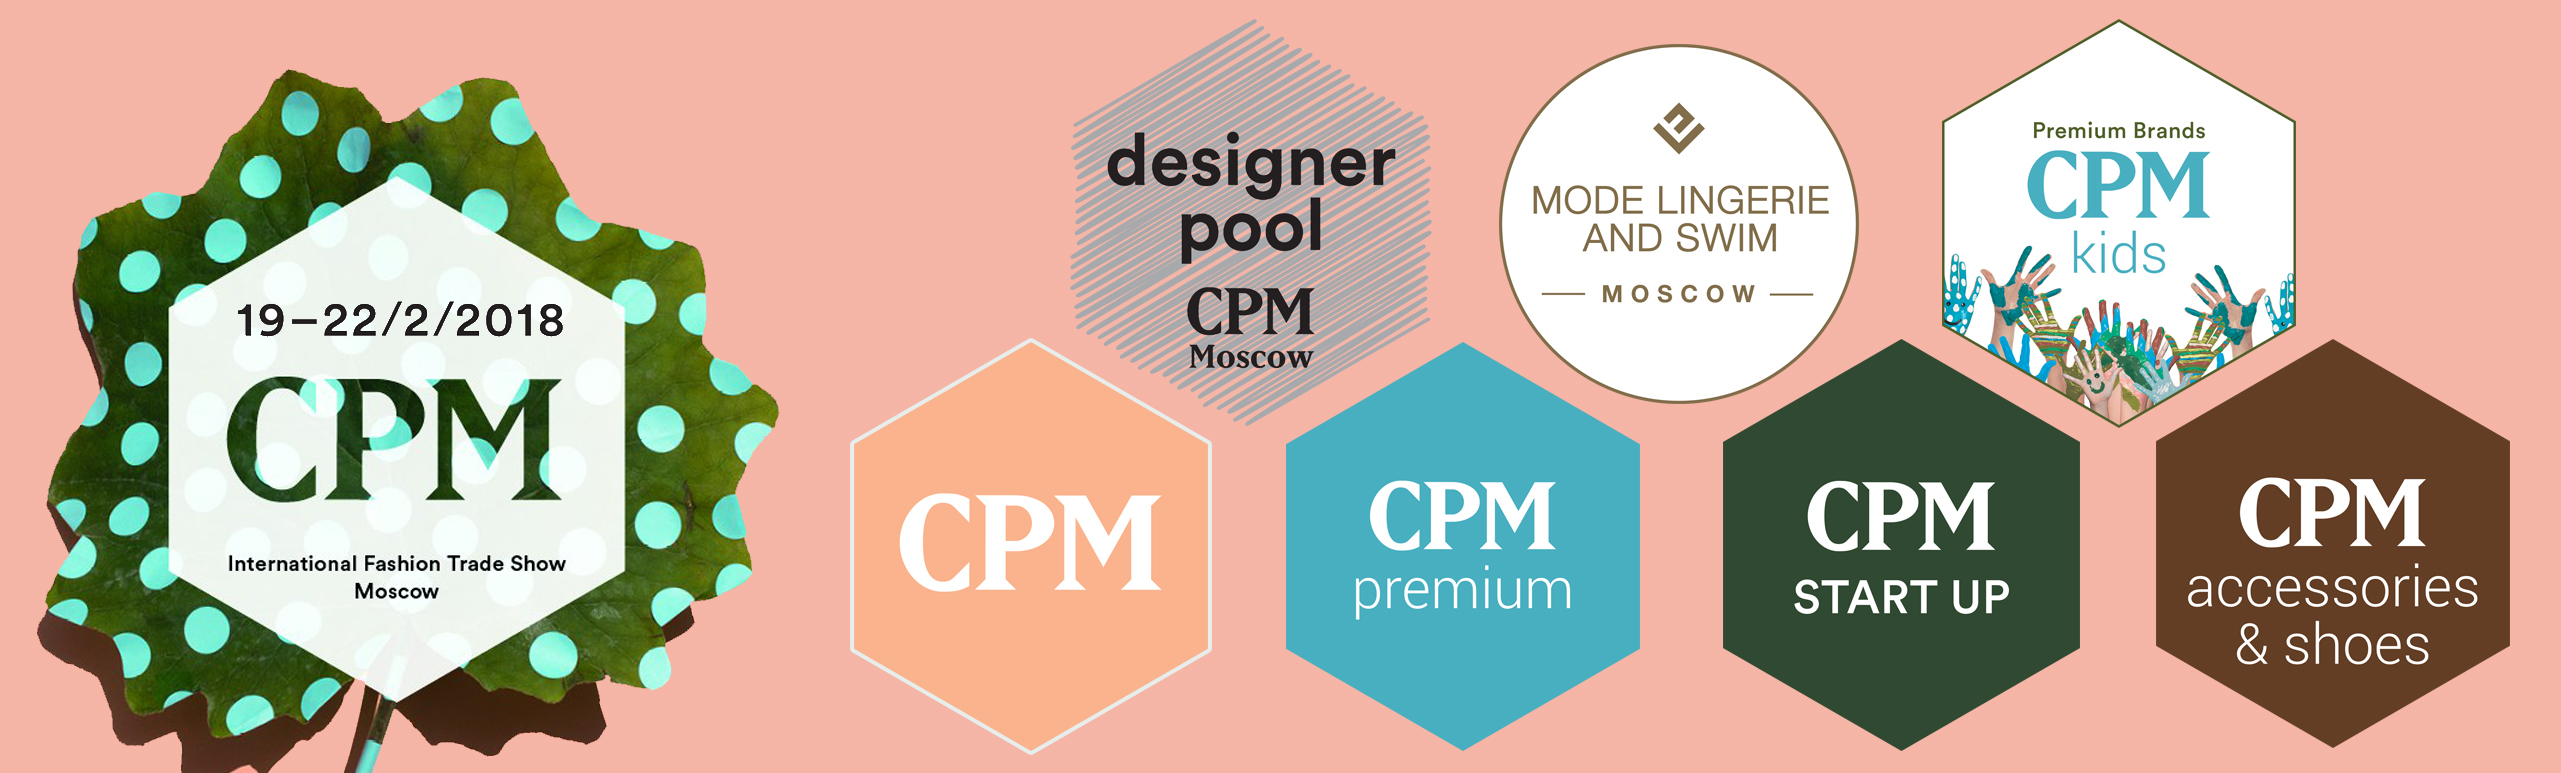 CPM MOSCOW 2018/19